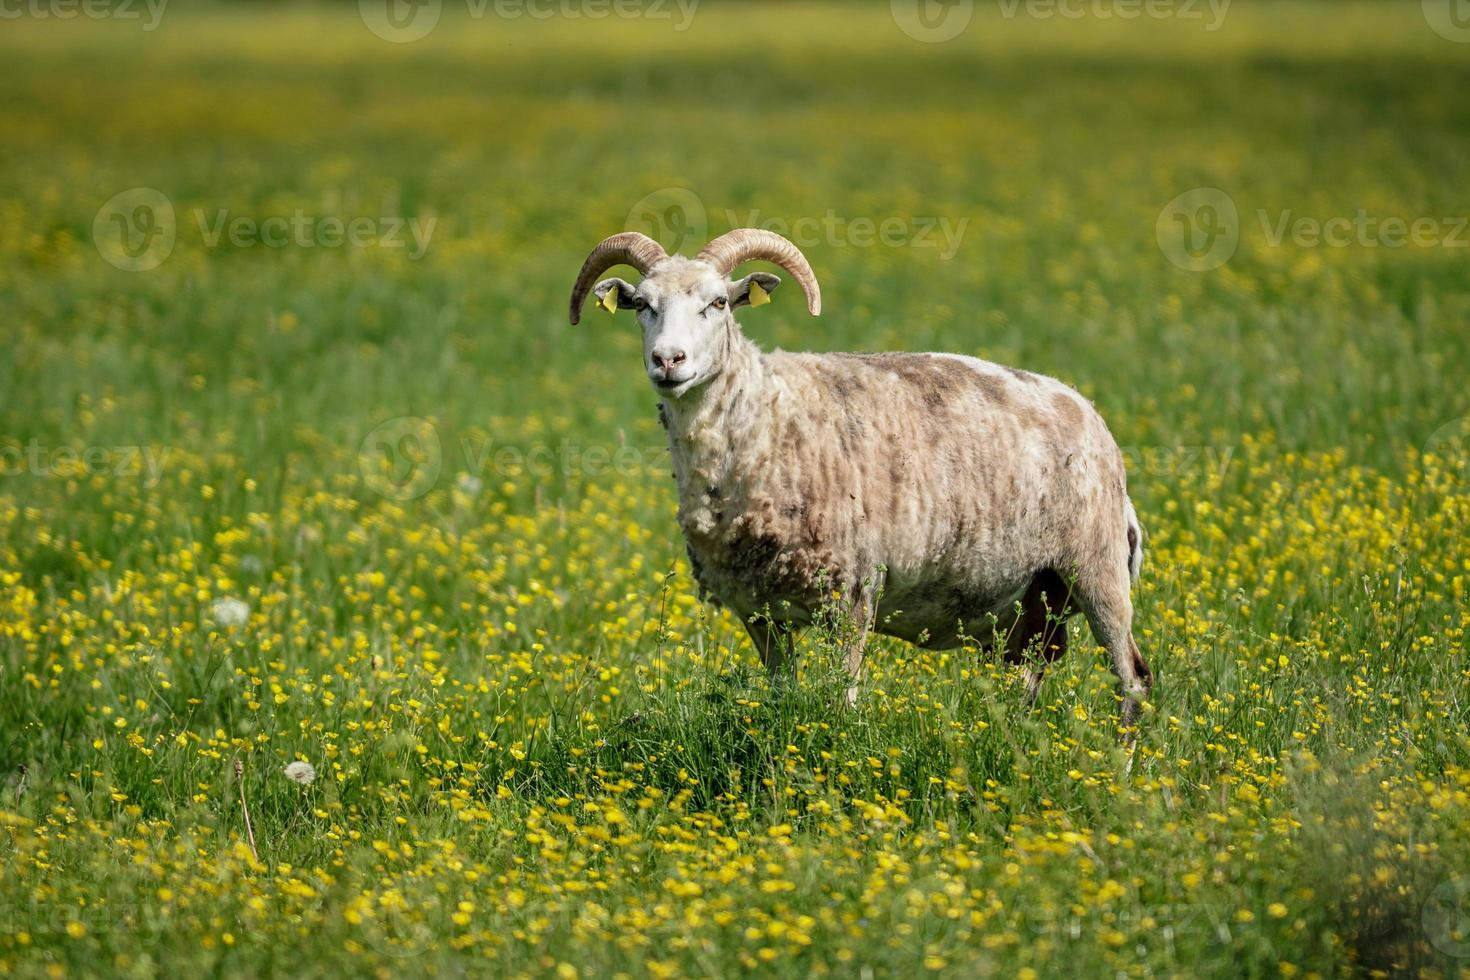 Sheep standing in a green field filled with yellow flowers photo